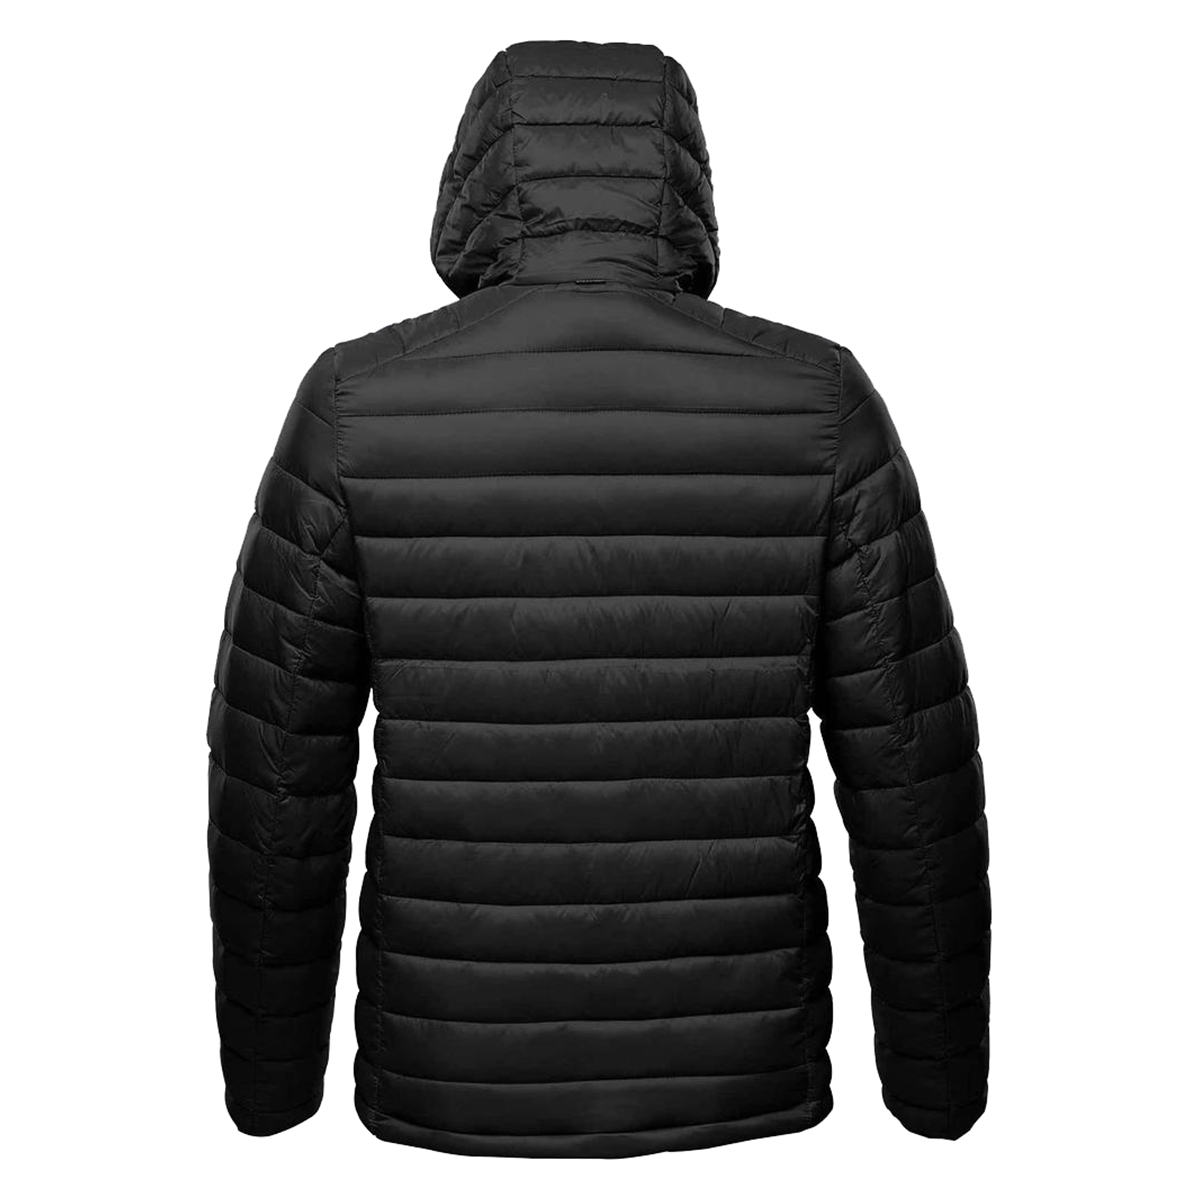 Stormtech Mens Gravity Hooded Thermal Winter Jacket